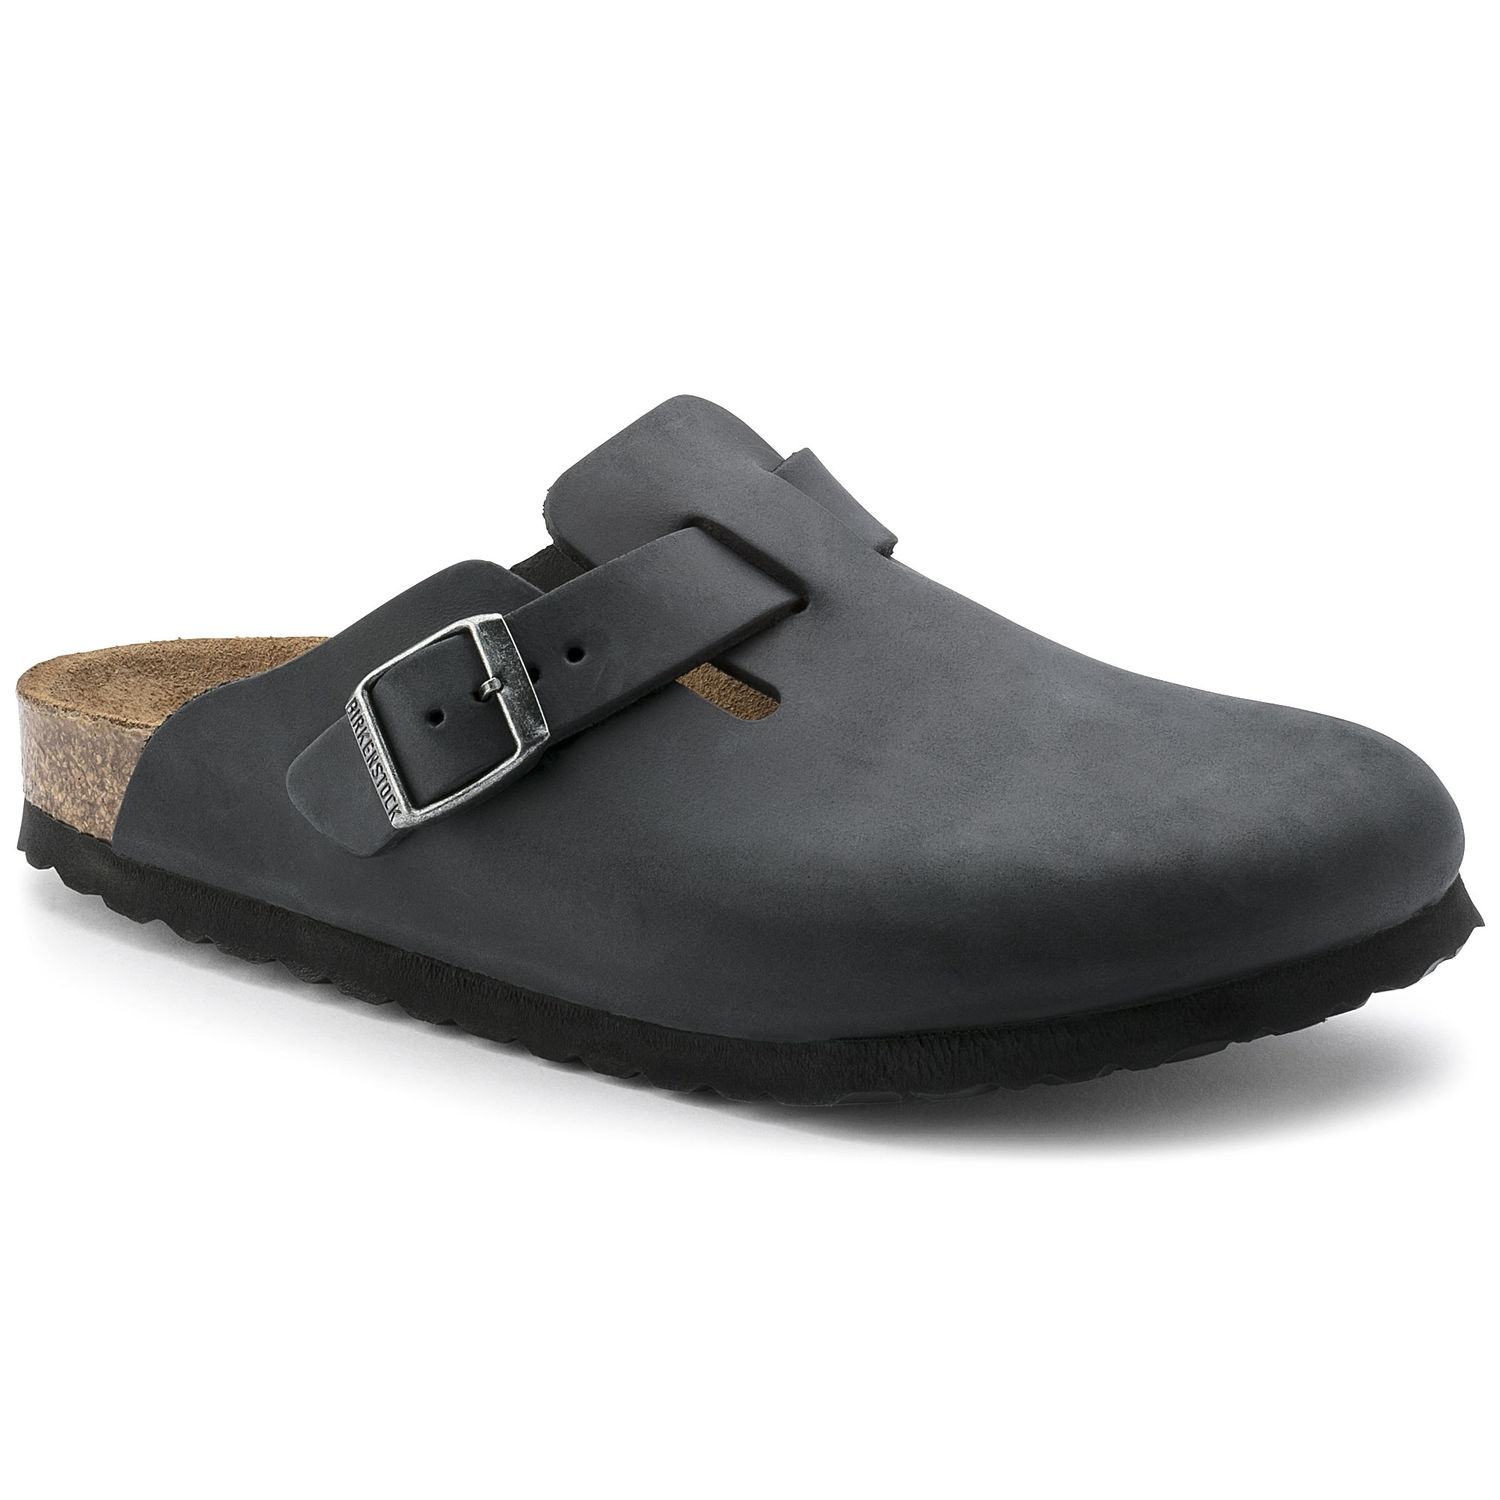 Sabot uomo BIRKENSTOCK BOSTON Oiled Leather Black